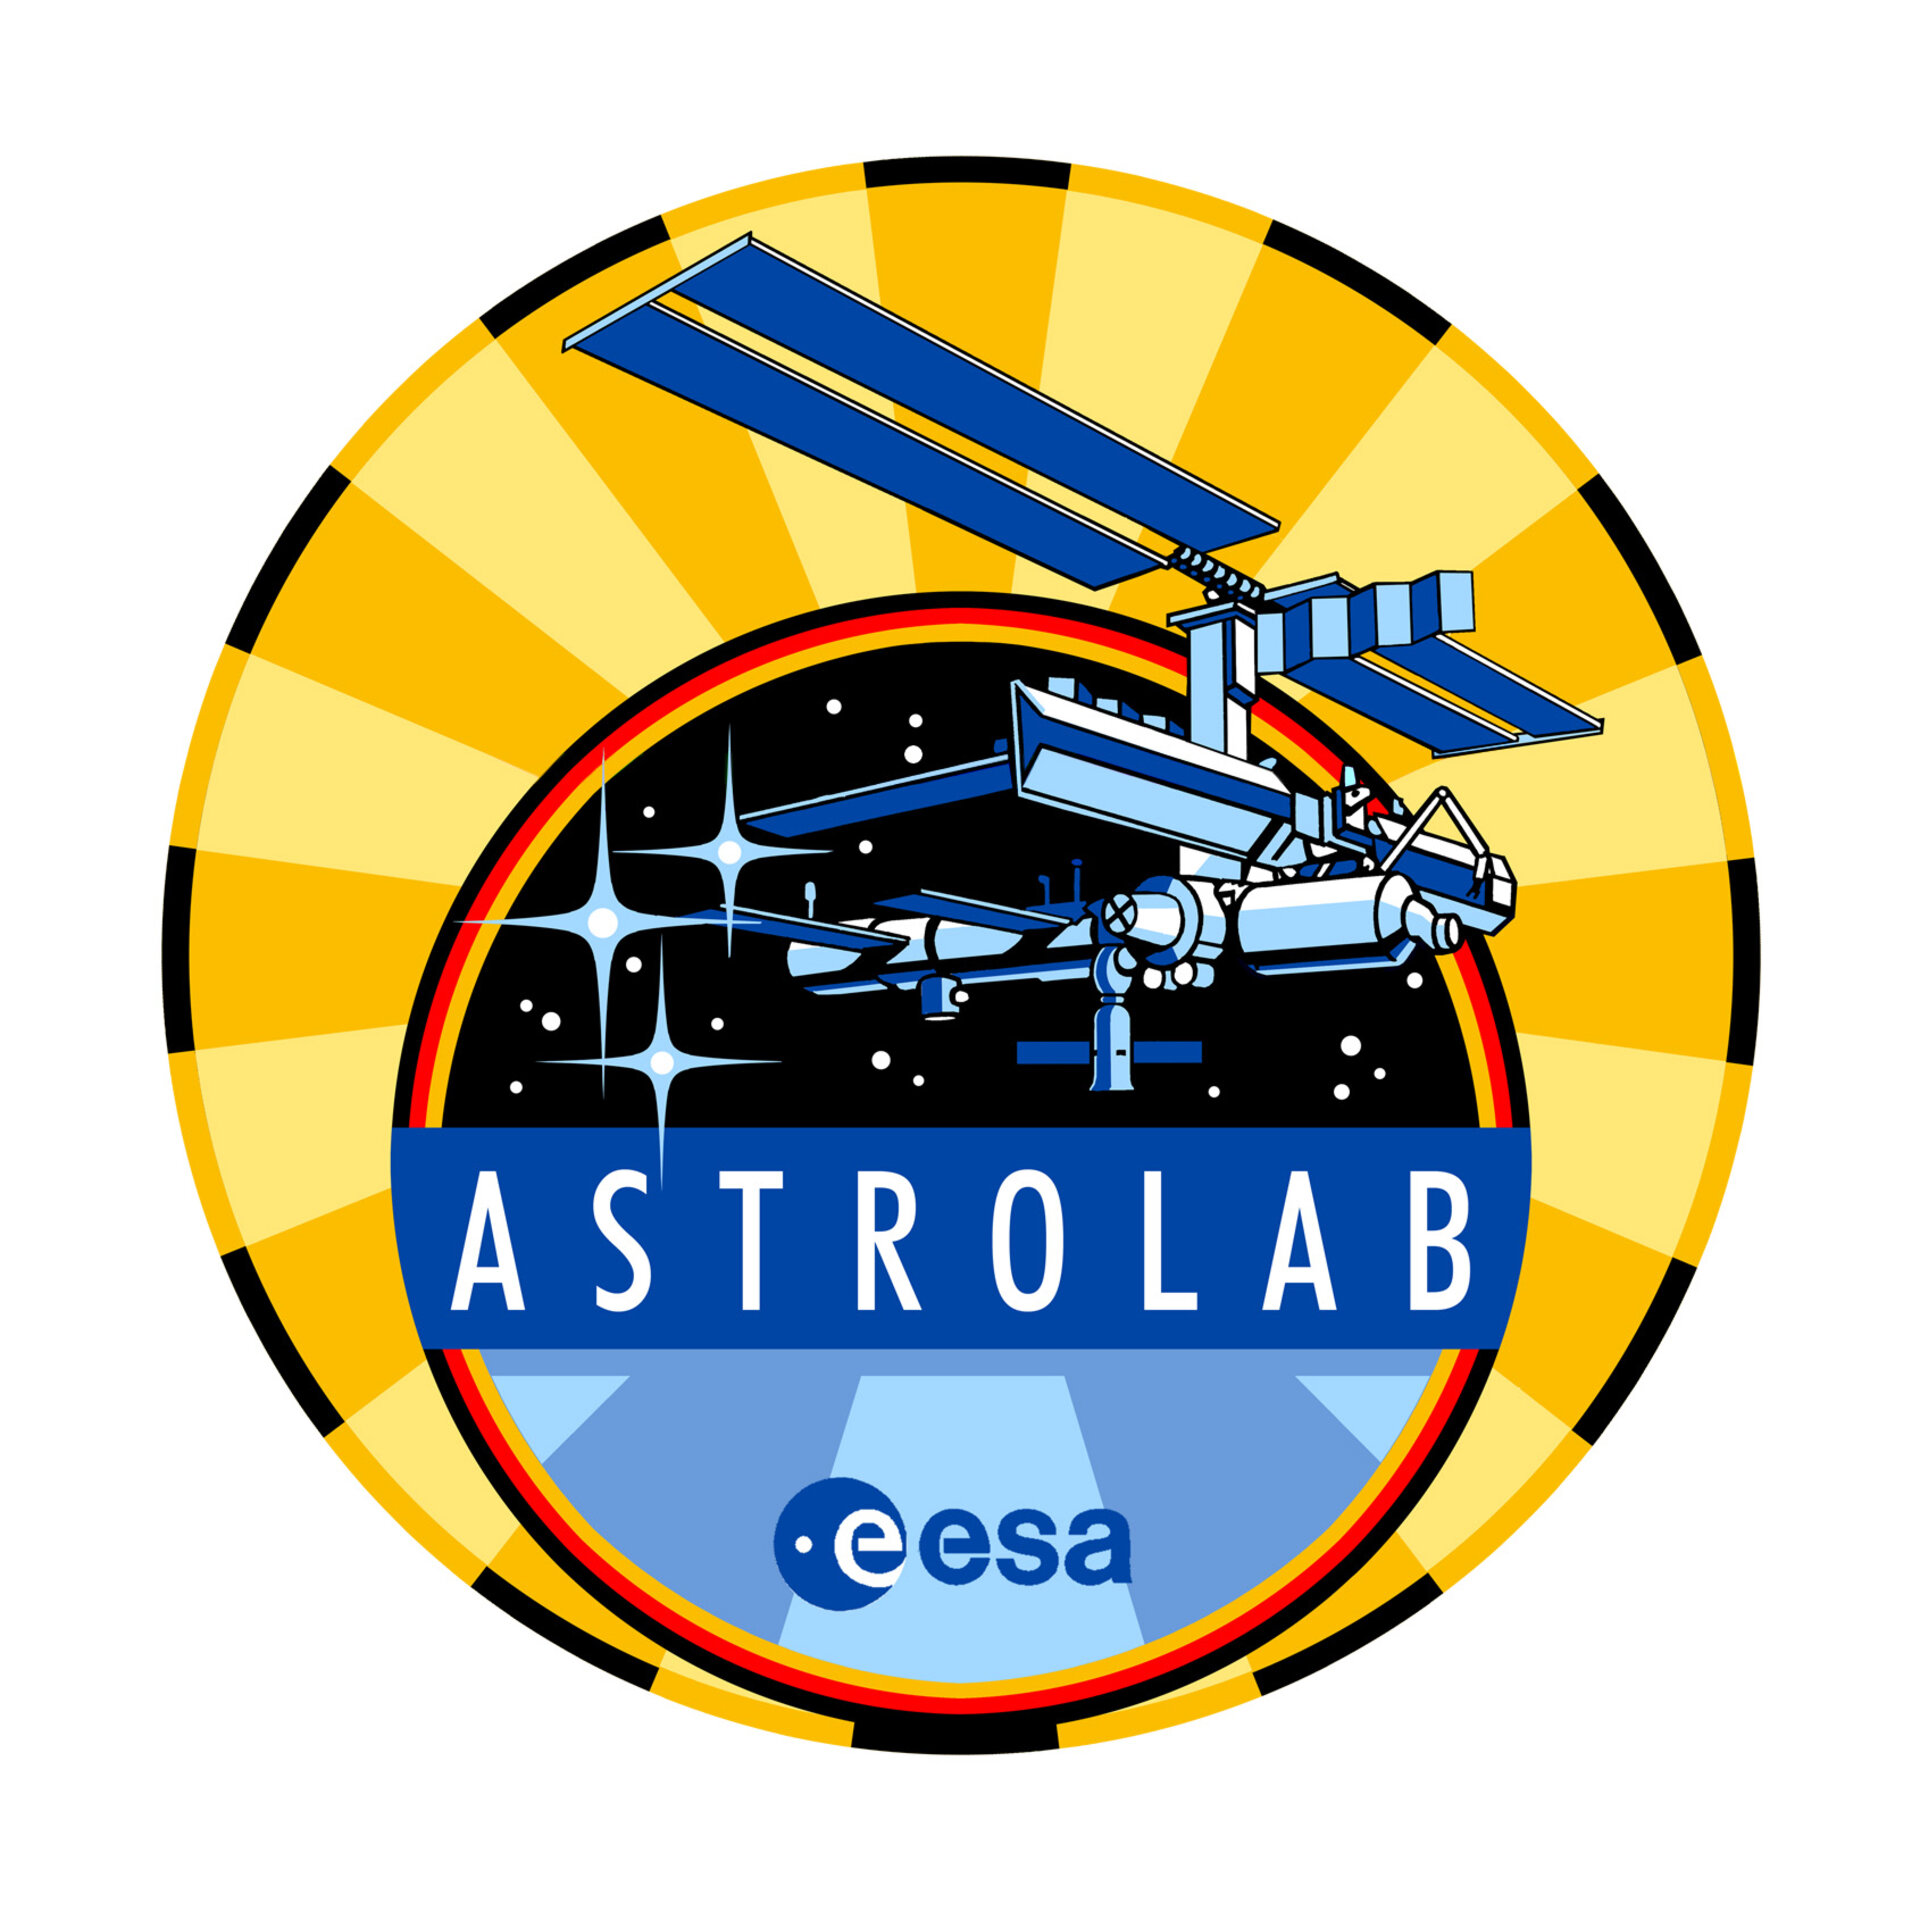 The Astrolab Mission will mark many important milestones for Europe